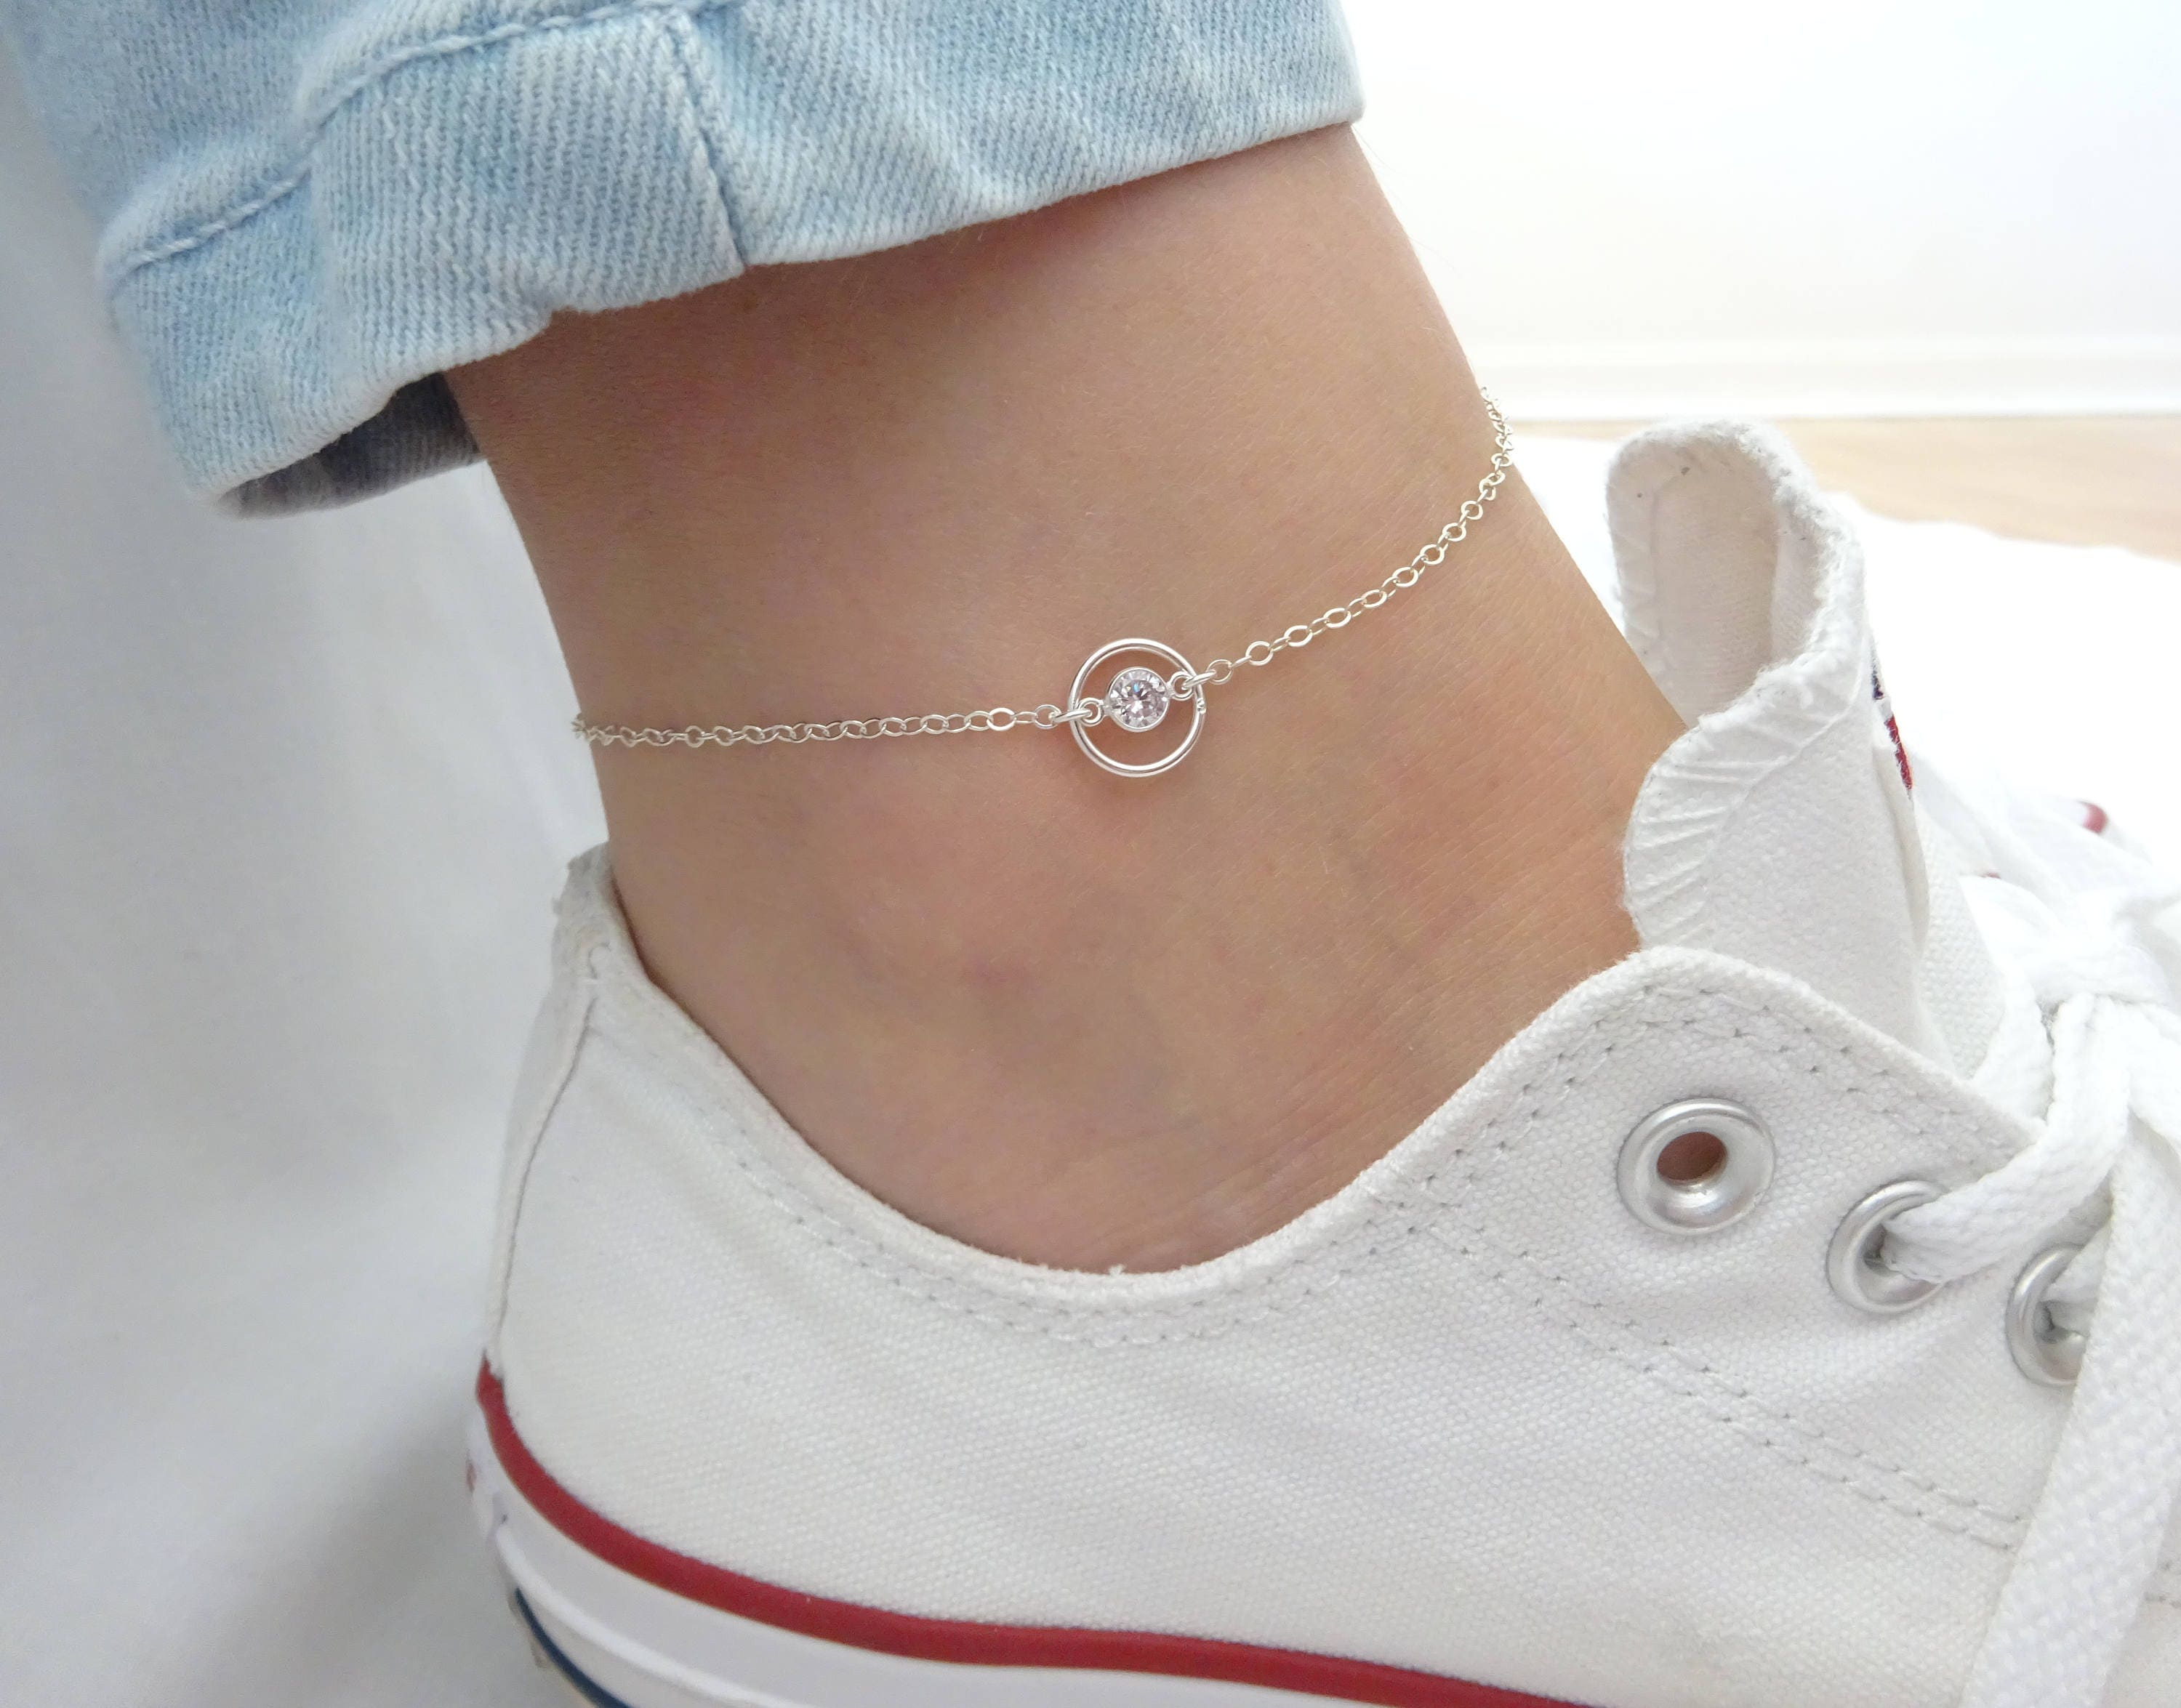 discount sporty from steel casual gold com ankle cubic rose stainless jewelry zirconia women anklet bracelet aaa fashion china woman product plated anklets dhgate